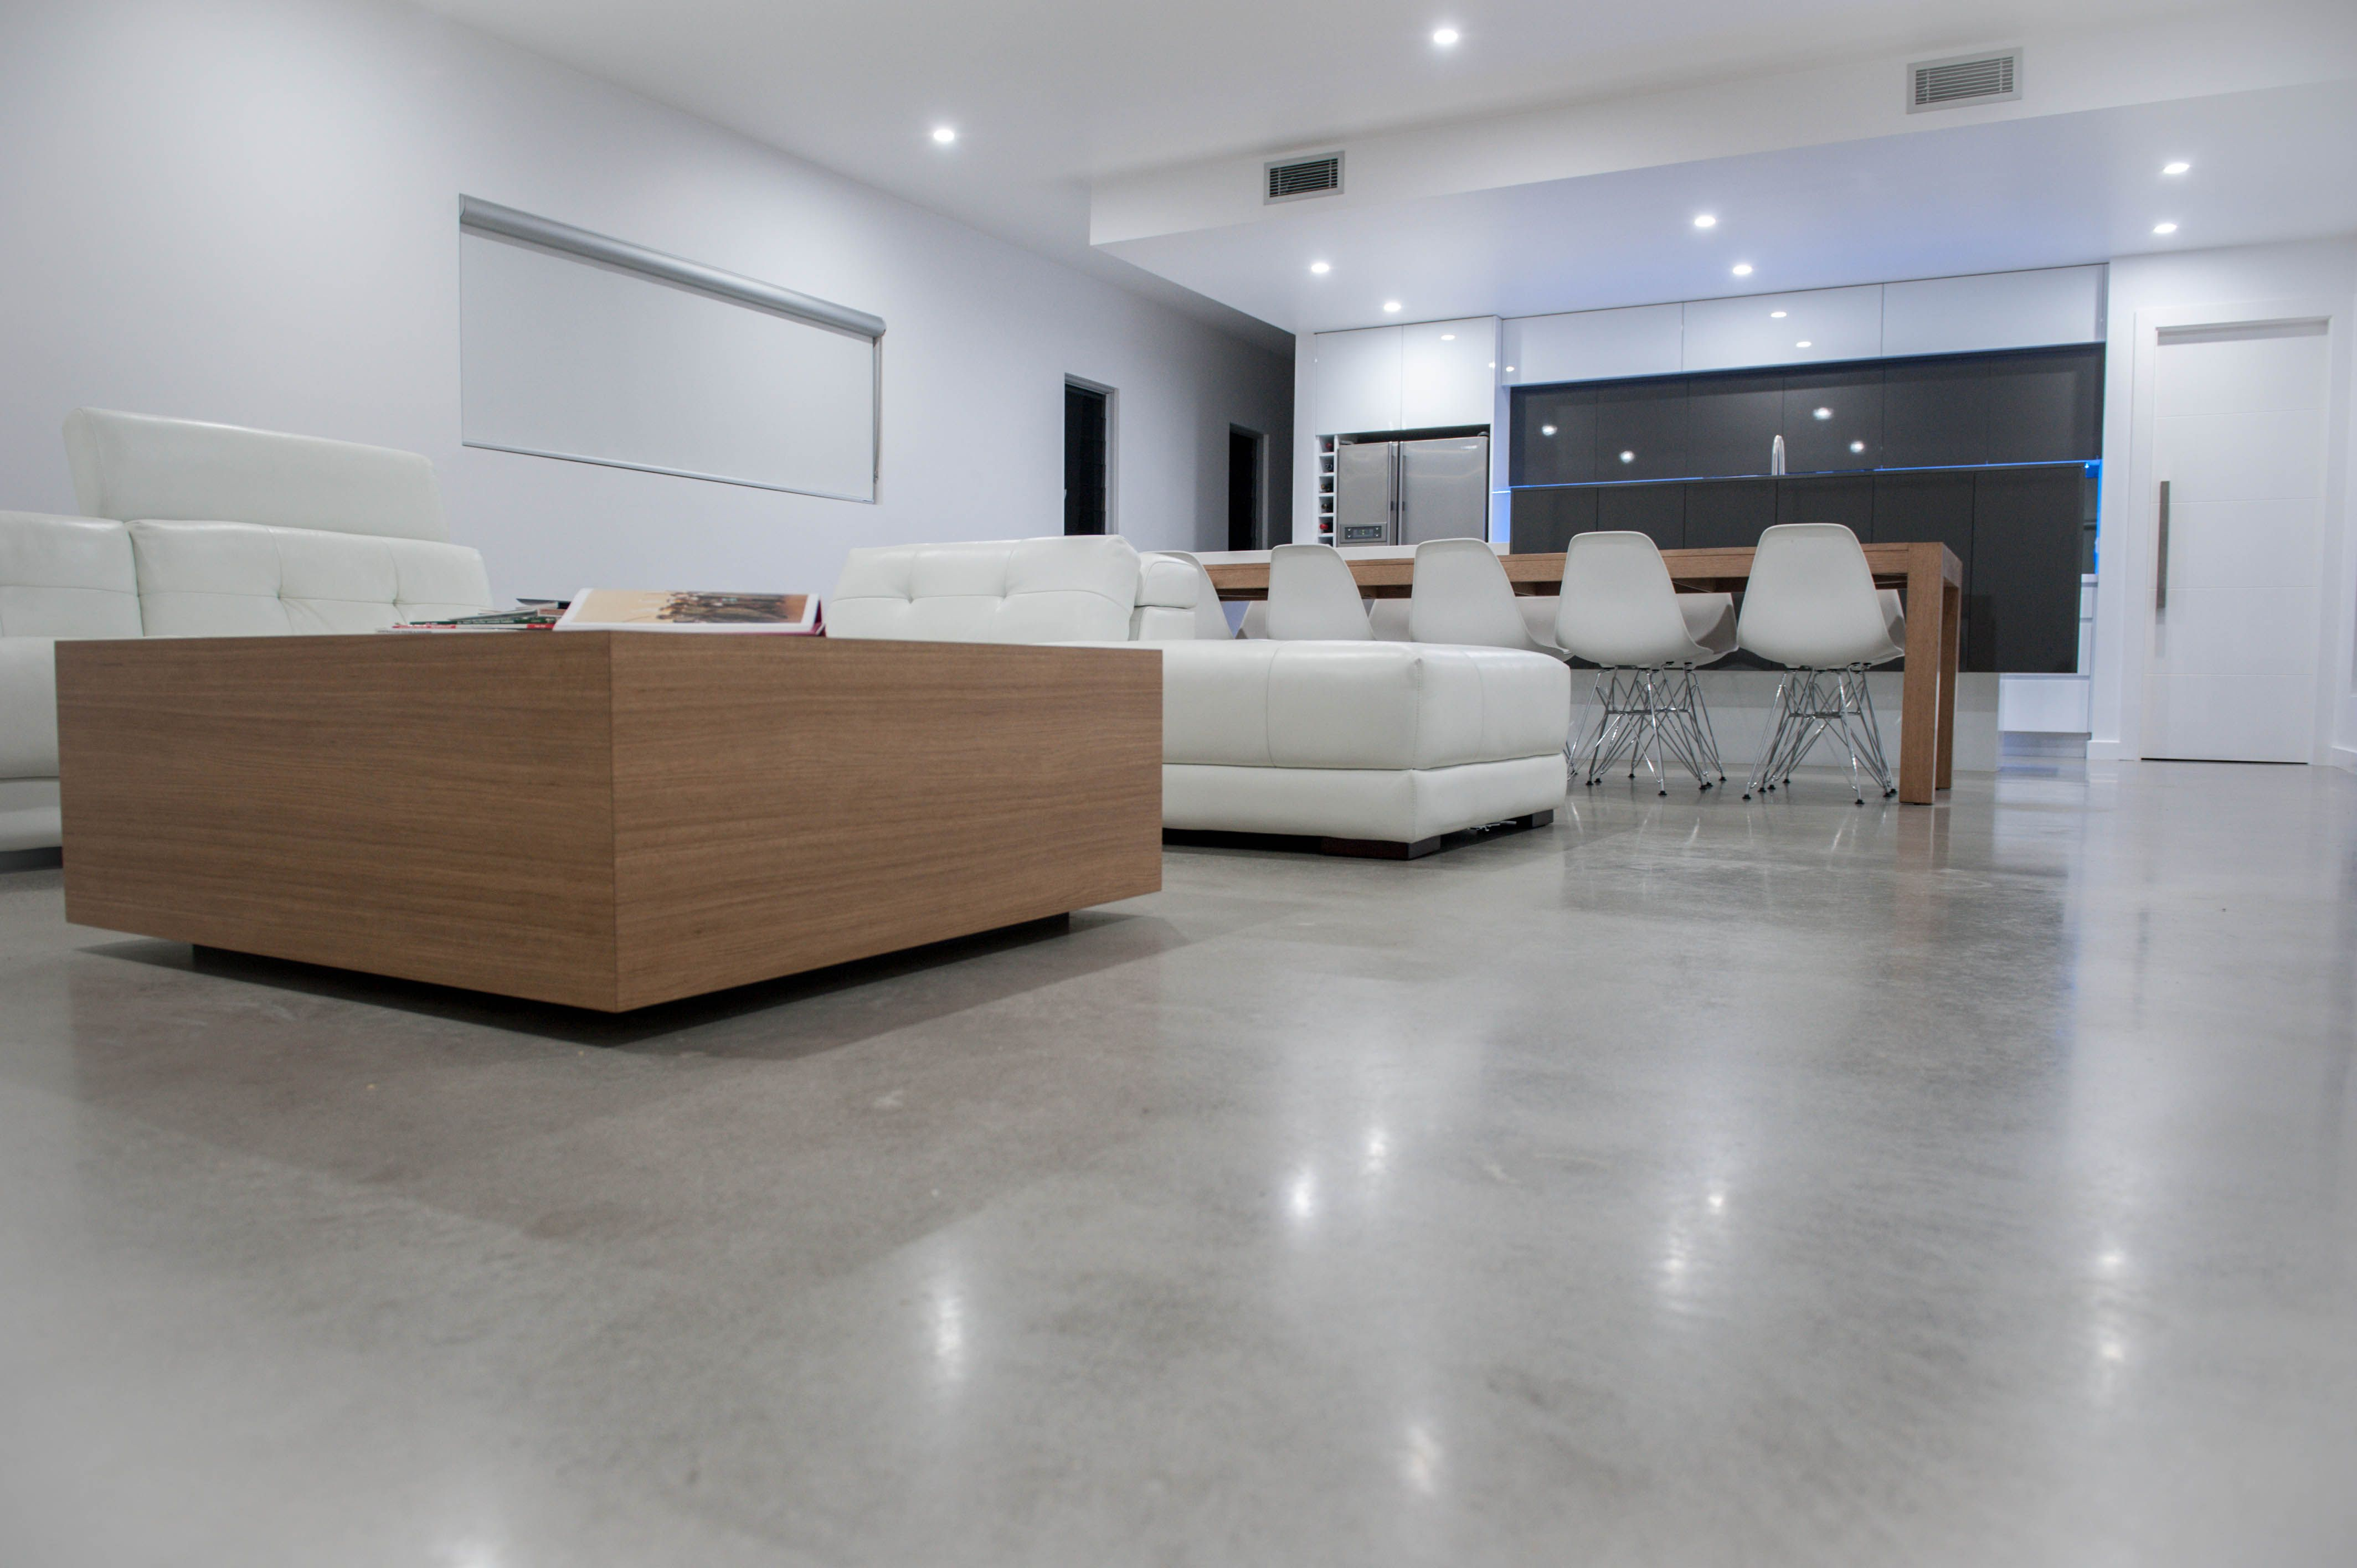 There are three different types of polished concrete